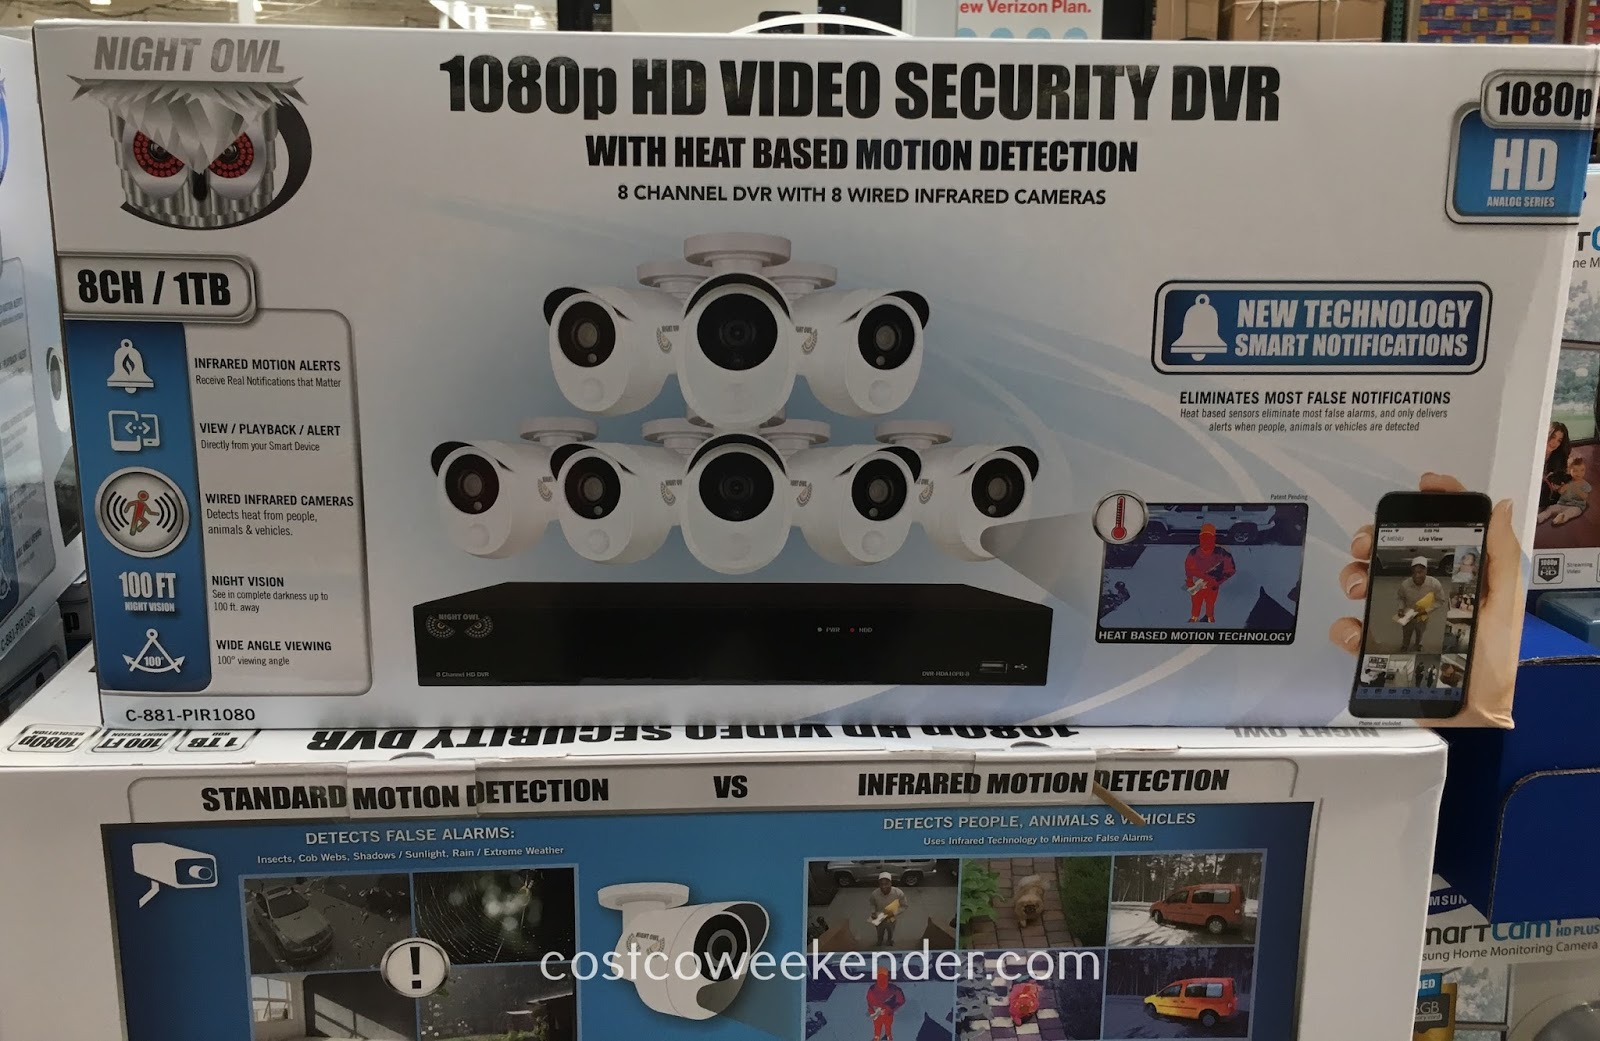 Camera Surveillance Exterieur Costco Night Owl C 881 Pir1080 8 Camera Hd Video Security System